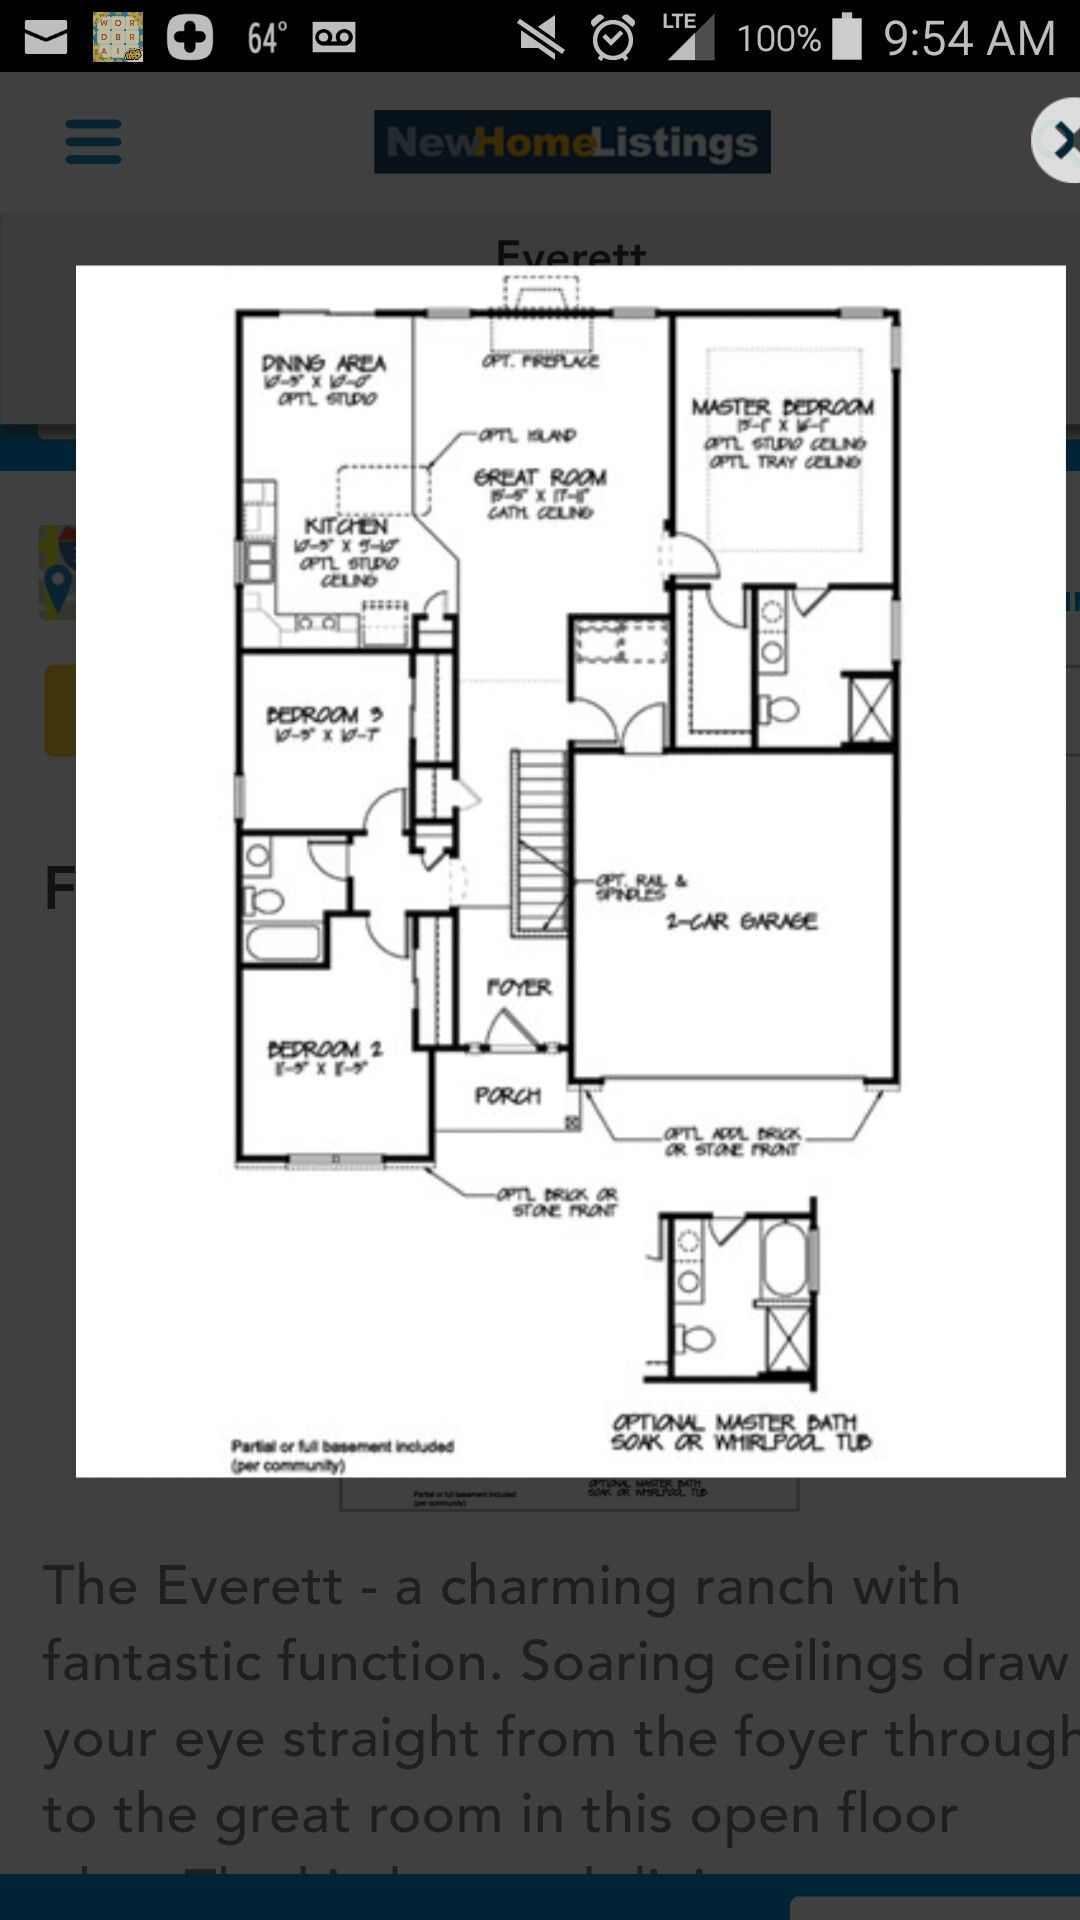 31 Dominion Homes Floor Plans Good Looking Concept Image Gallery